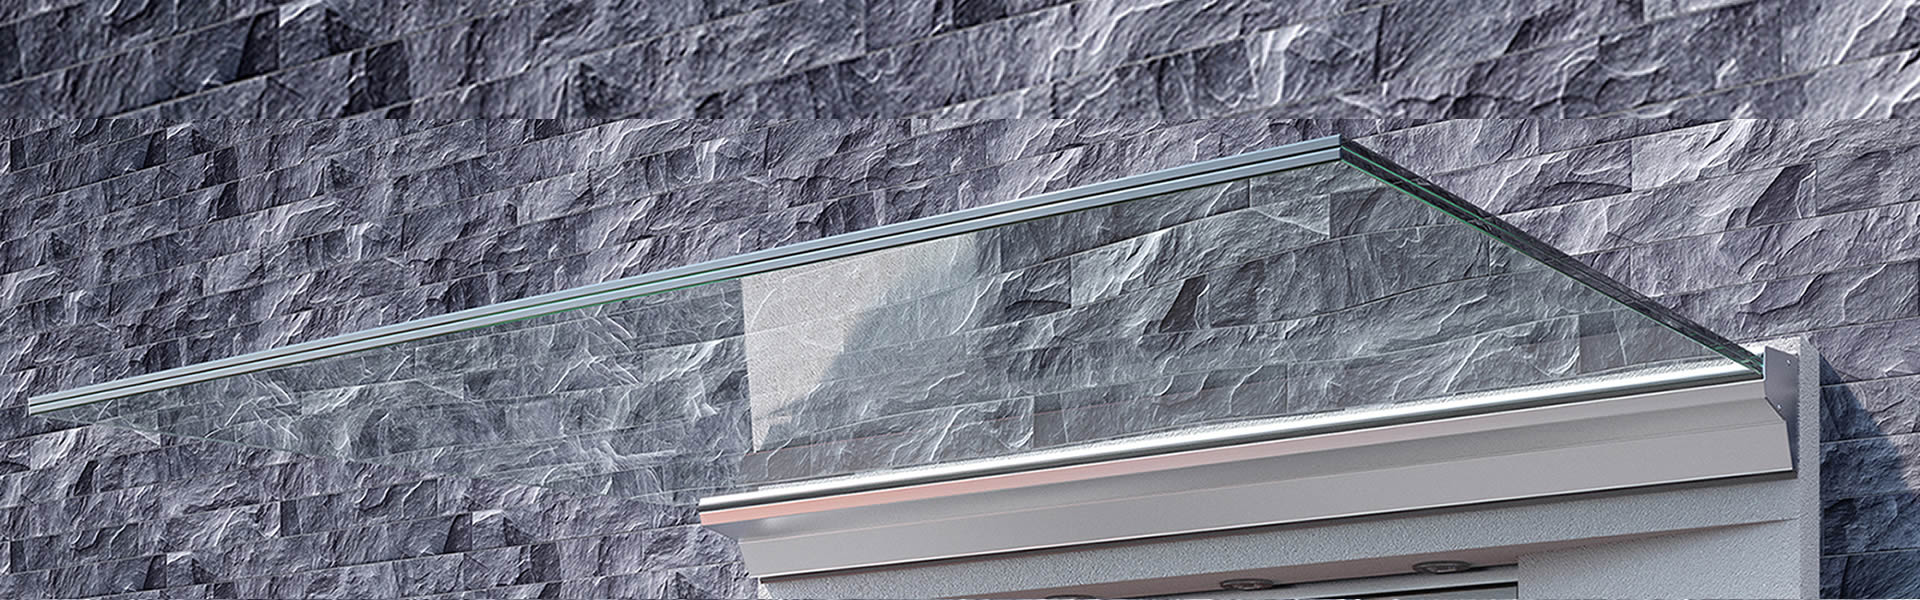 Six reasons to add a glass canopy to your property